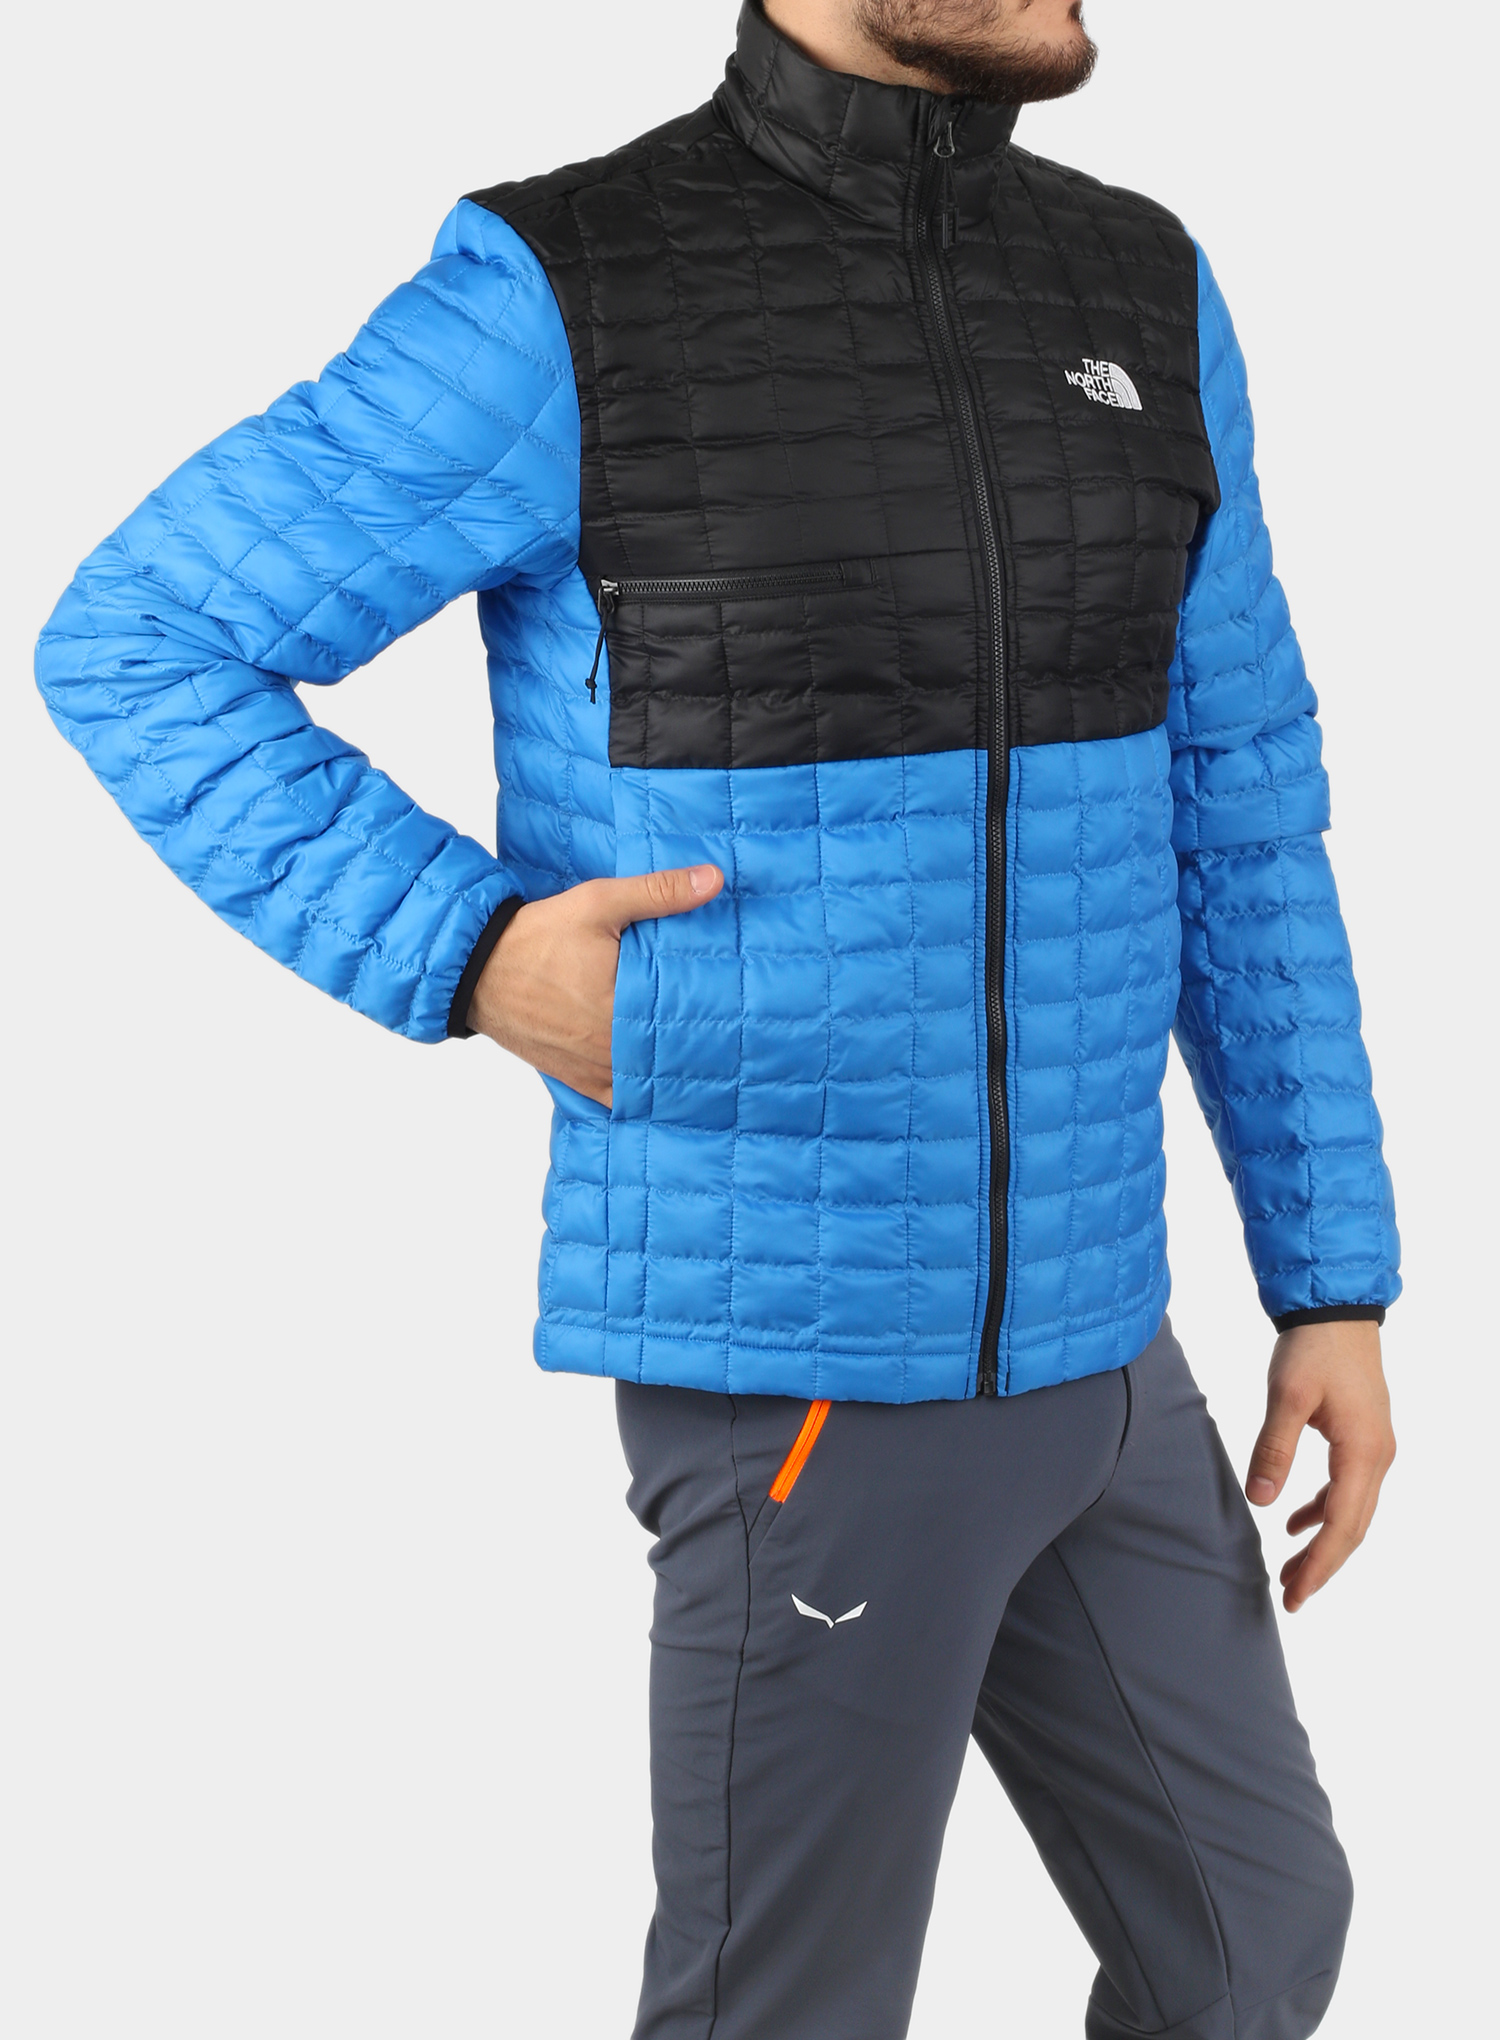 Kurtka The North Face ThermoBall Eco Active Jacket - l.blue/blk - zdjęcie nr. 3